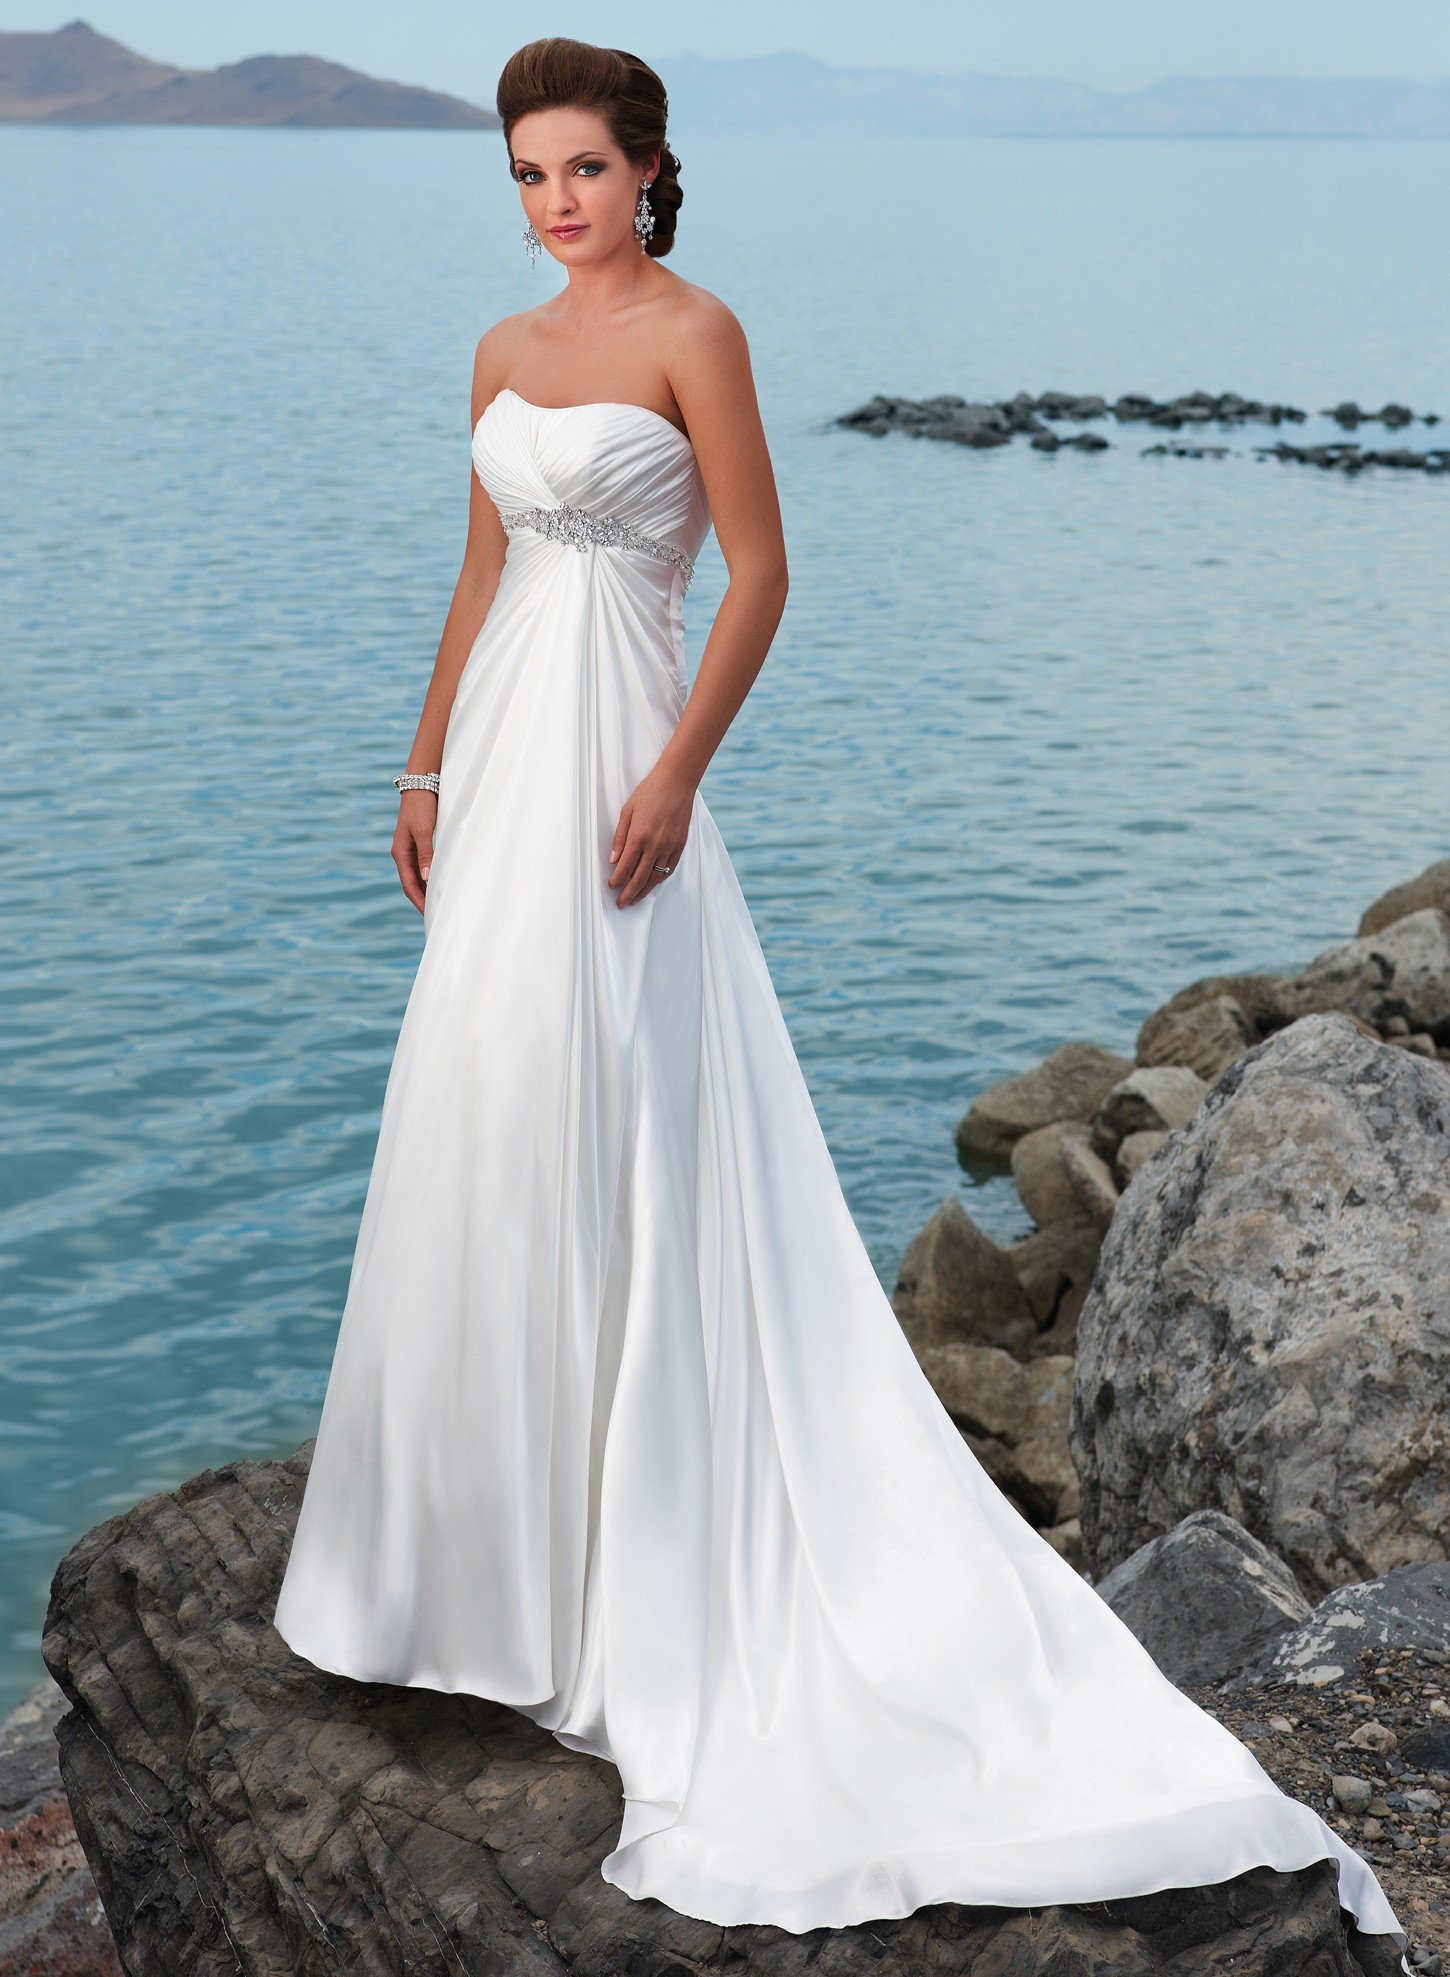 Wedding Gowns A Line Strapless : Satin strapless dipped neckline a line wedding dress see the details